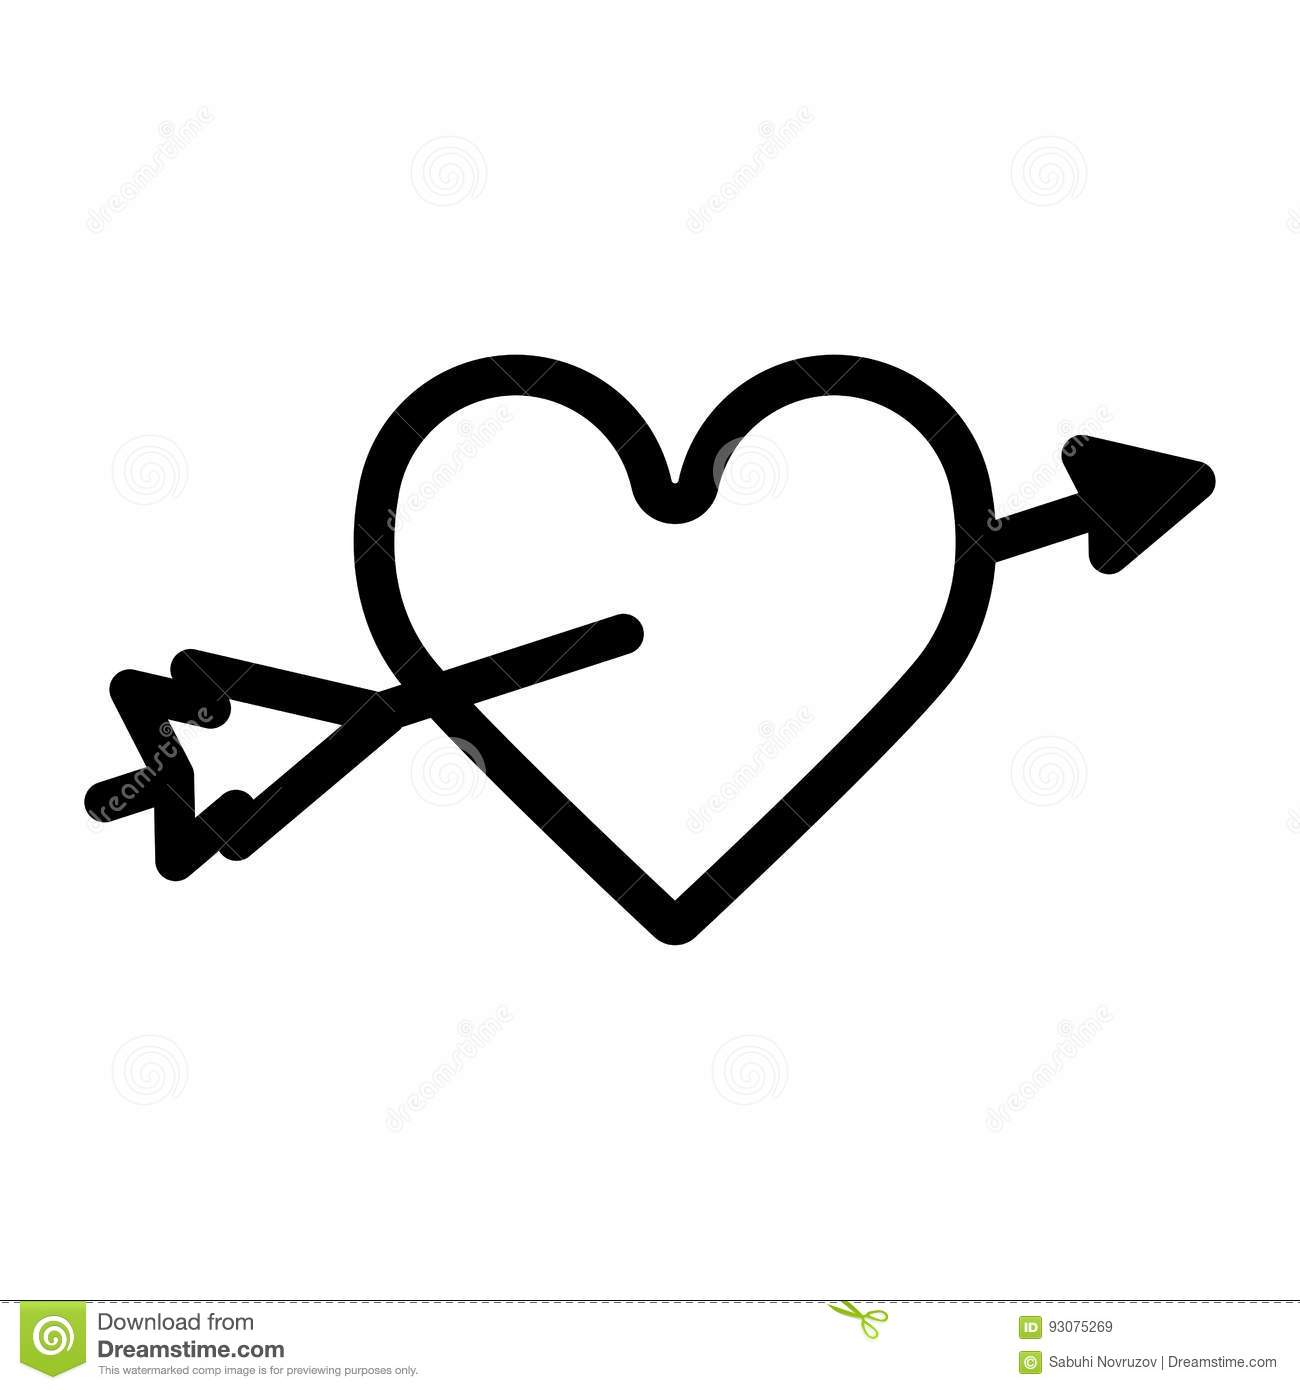 Heart With An Arrow Vector Icon. Black And White Love Illustration.